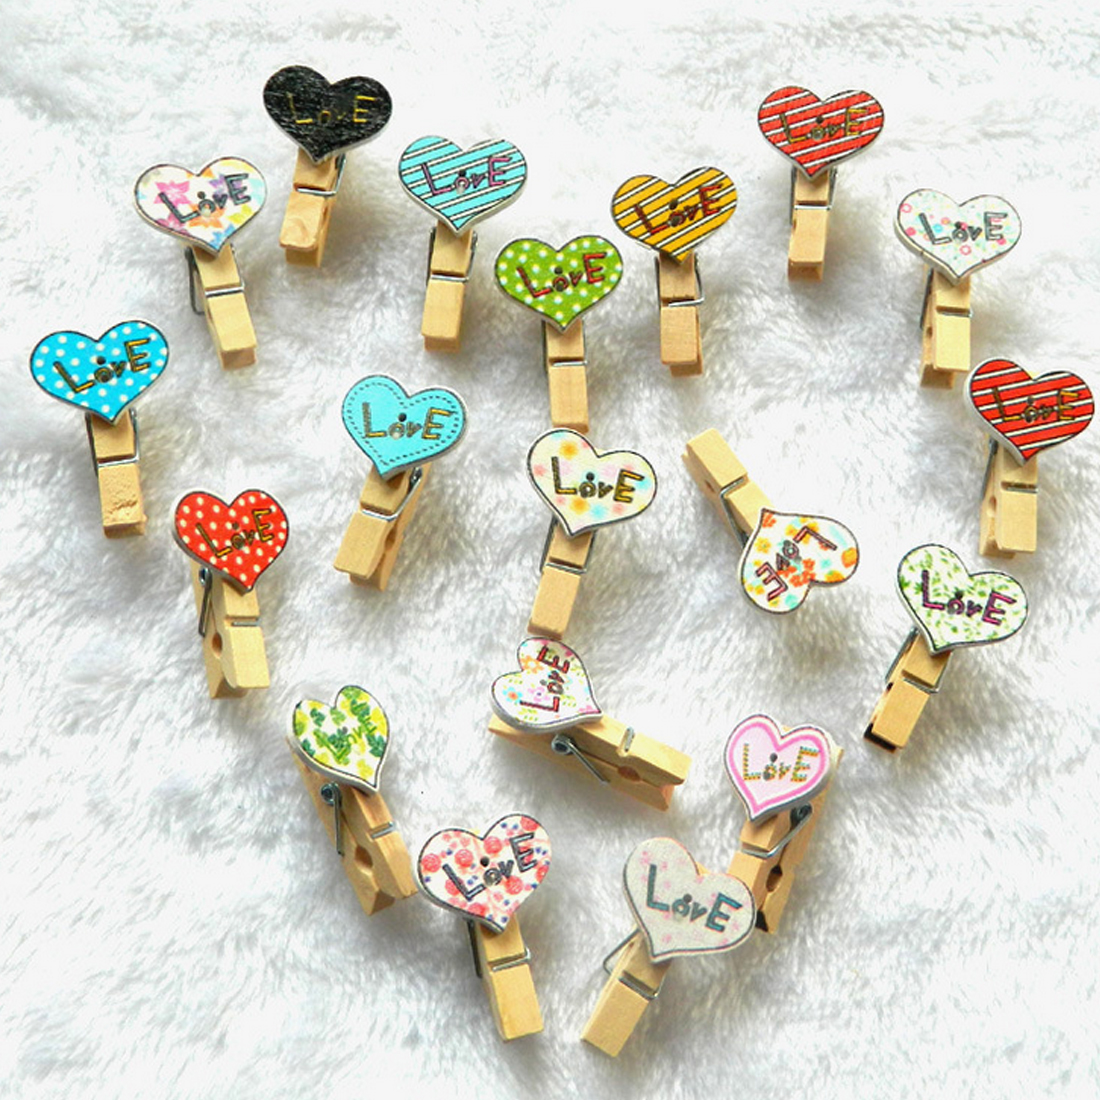 FangNymph 10Pcs/Pack Colorful Mini Printing Amor Wooden Clips Clothes Paper Photo Clips Craft Postcard Gift Clips(Color Random)